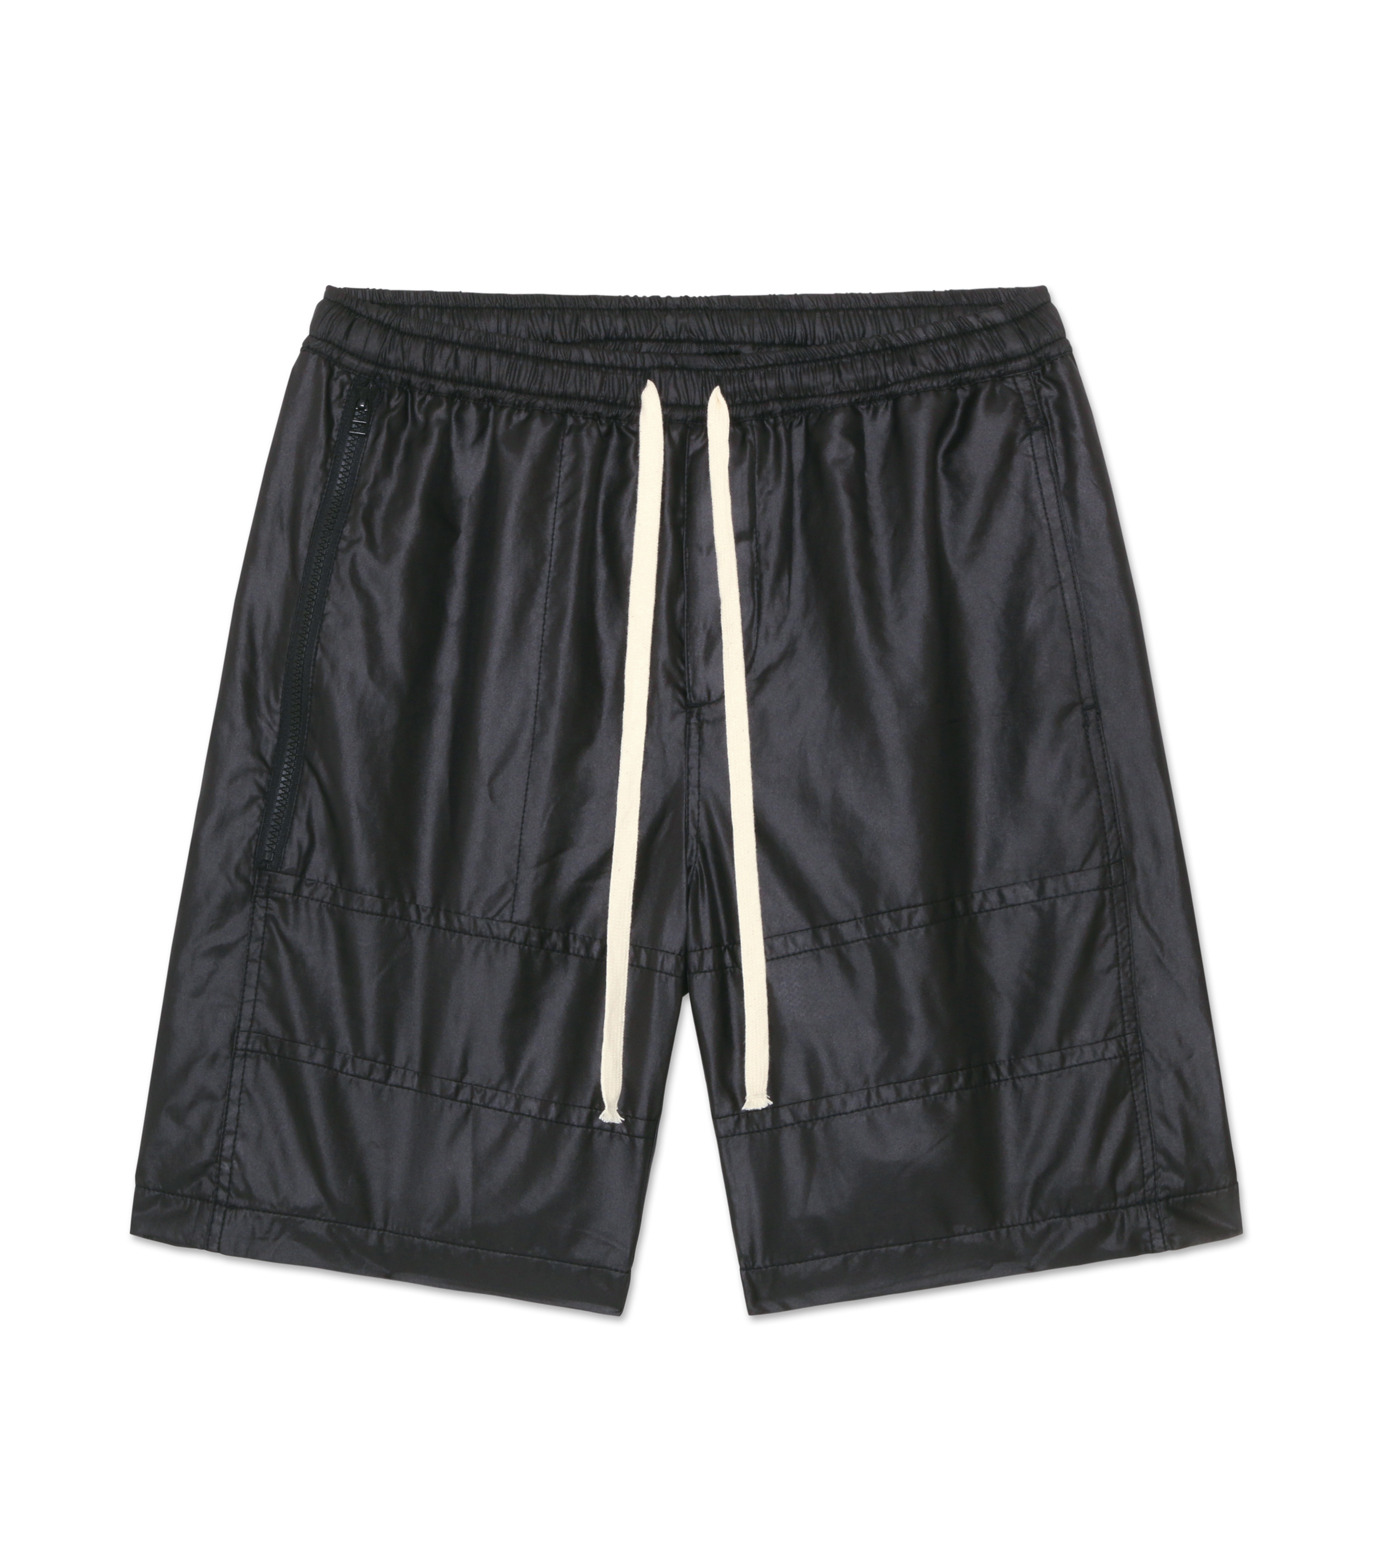 HEY YOU !(ヘイユウ)のWASHED TWILL SHORTS-BLACK(SWIMWEAR/SWIMWEAR)-18S98011-13 拡大詳細画像1